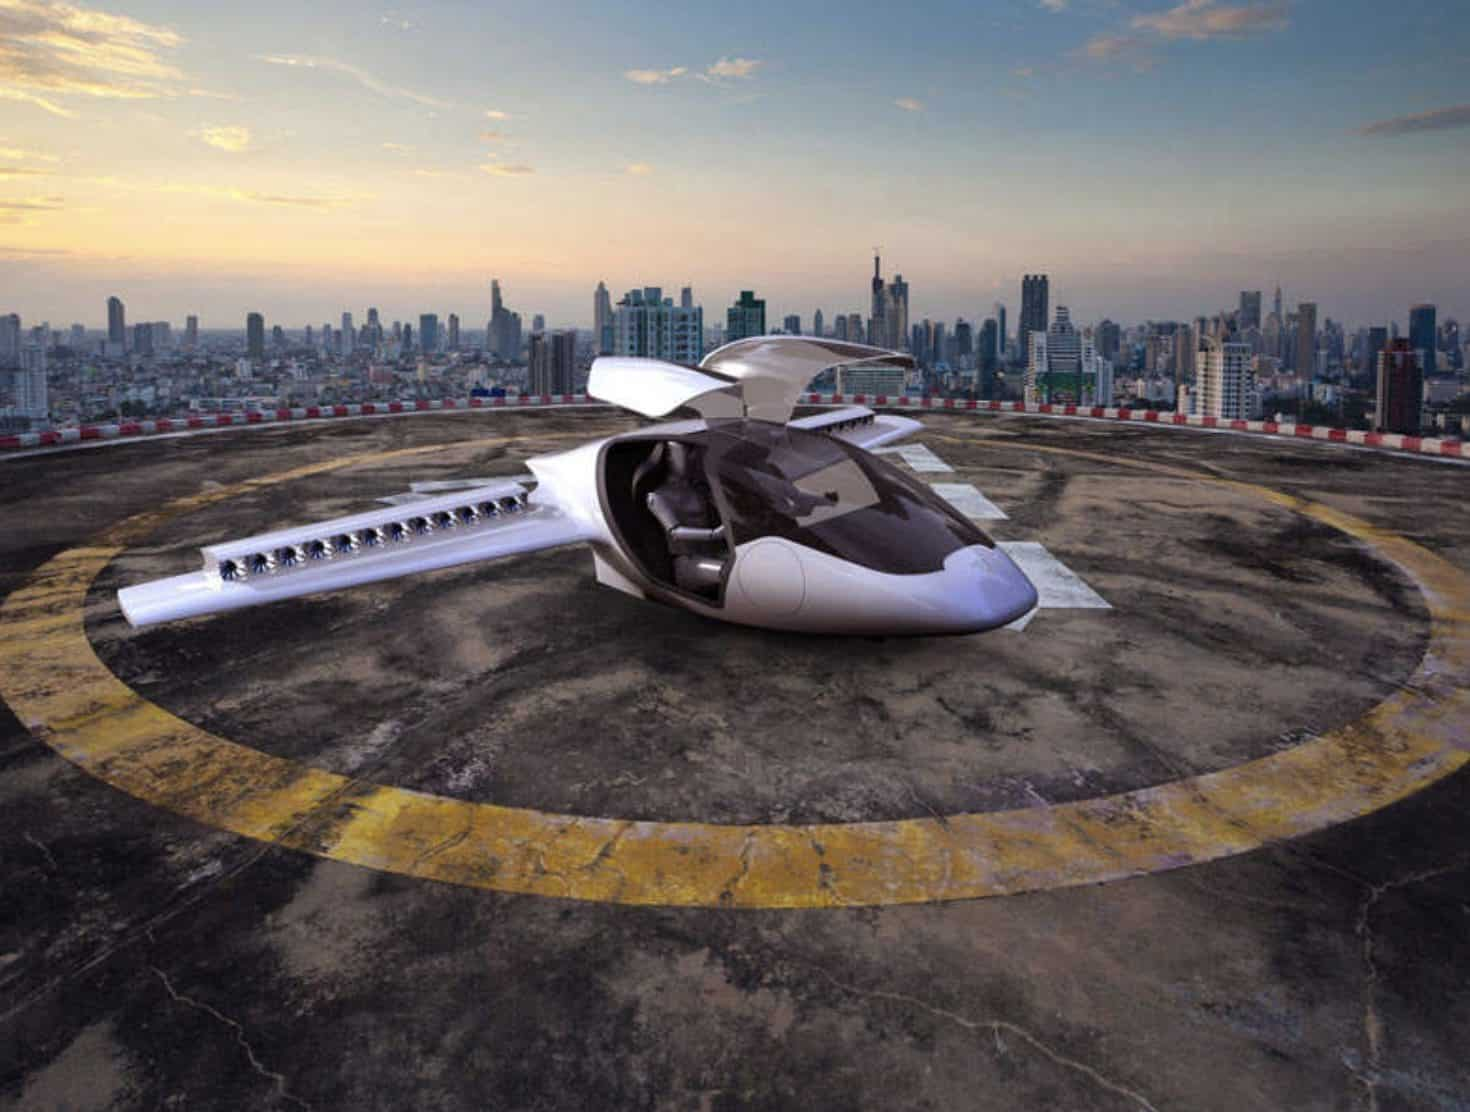 Elon Musk dying to do a supersonic, eVTOL jet